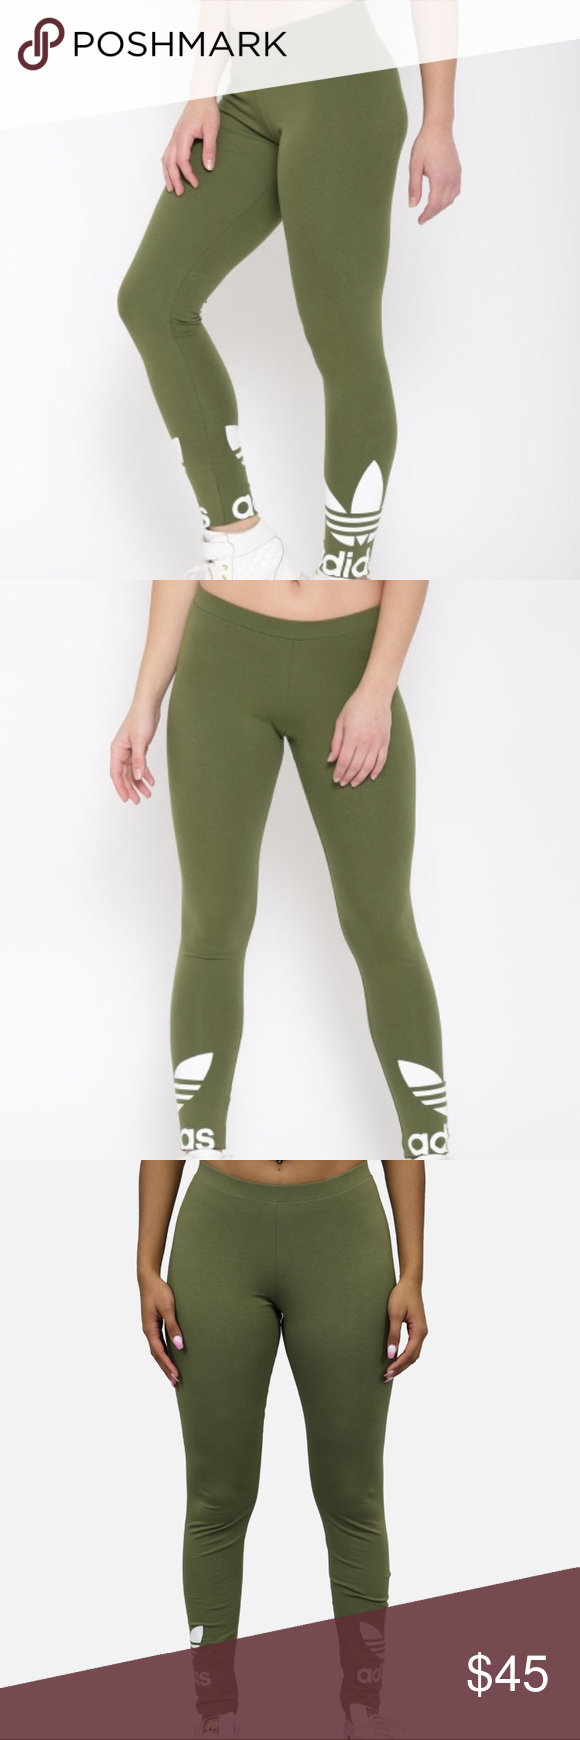 7af0410c820 BNWT OLIVE GREEN ADIDAS TREFOIL LEGGINGS Women's size large. Another pair  I'm sad